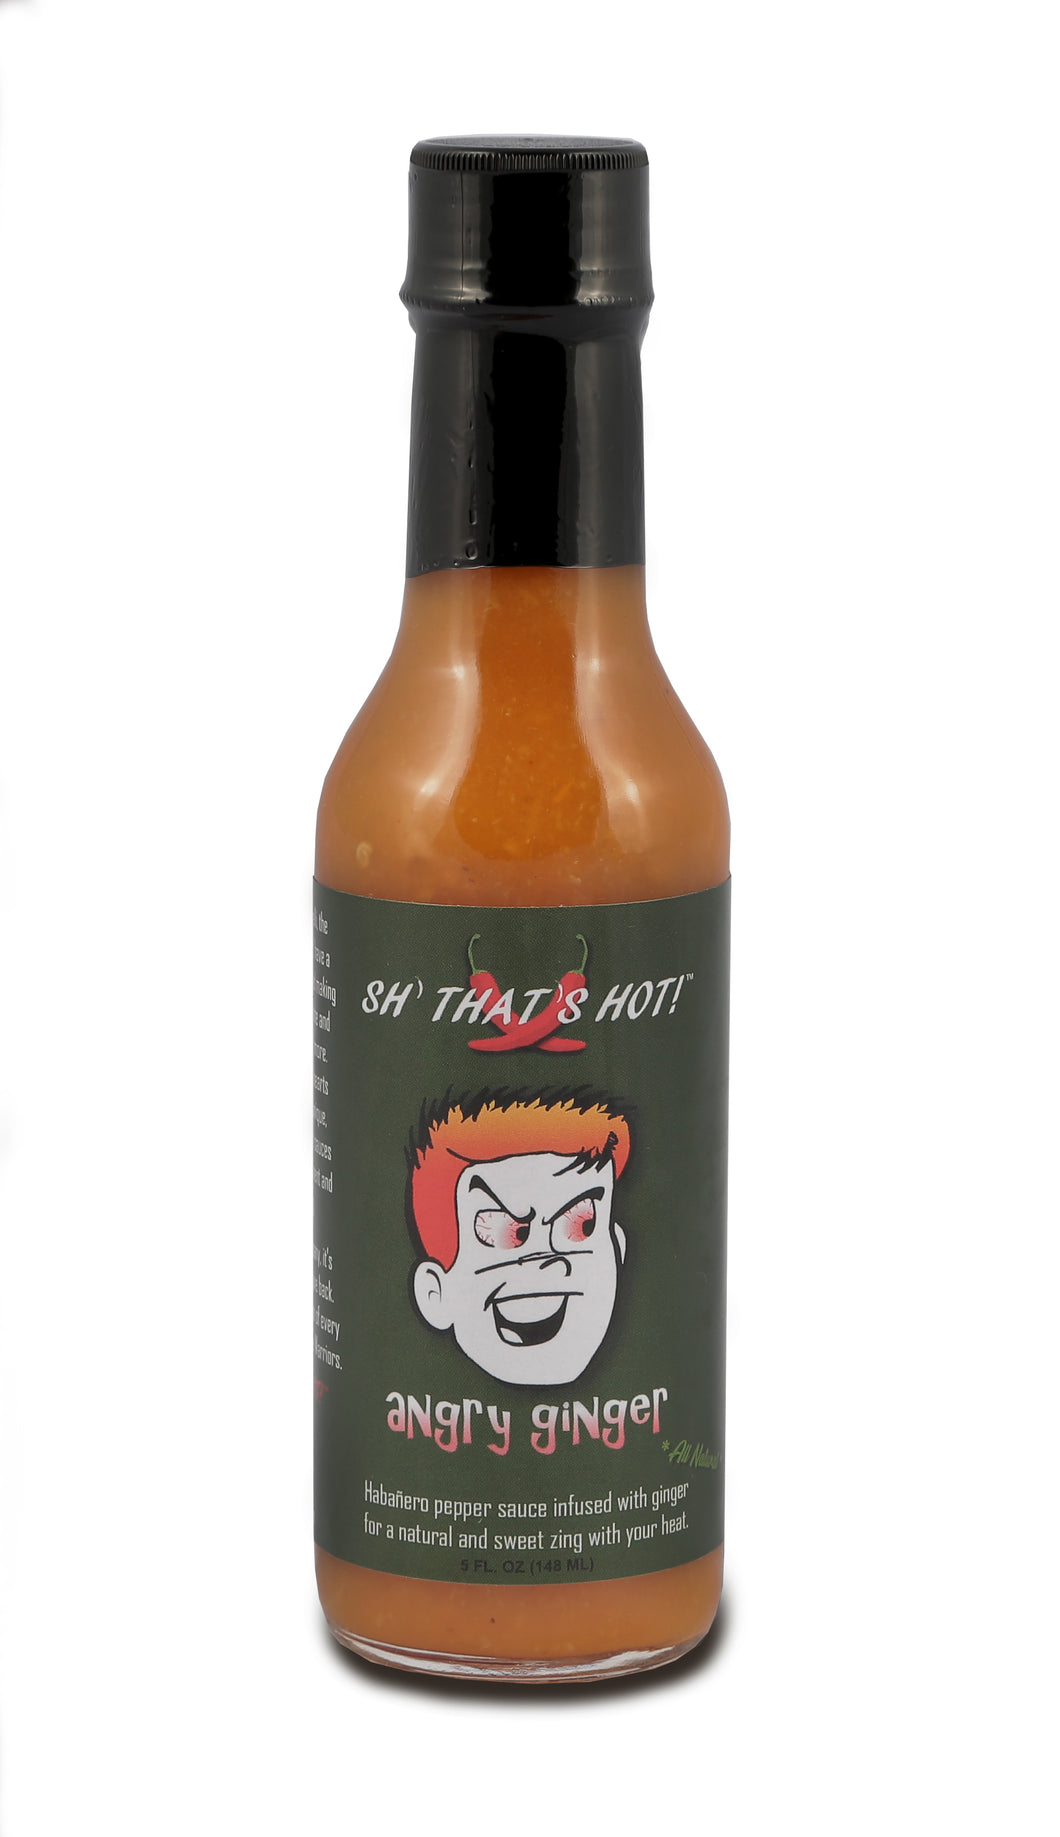 Angry Ginger hot sauce